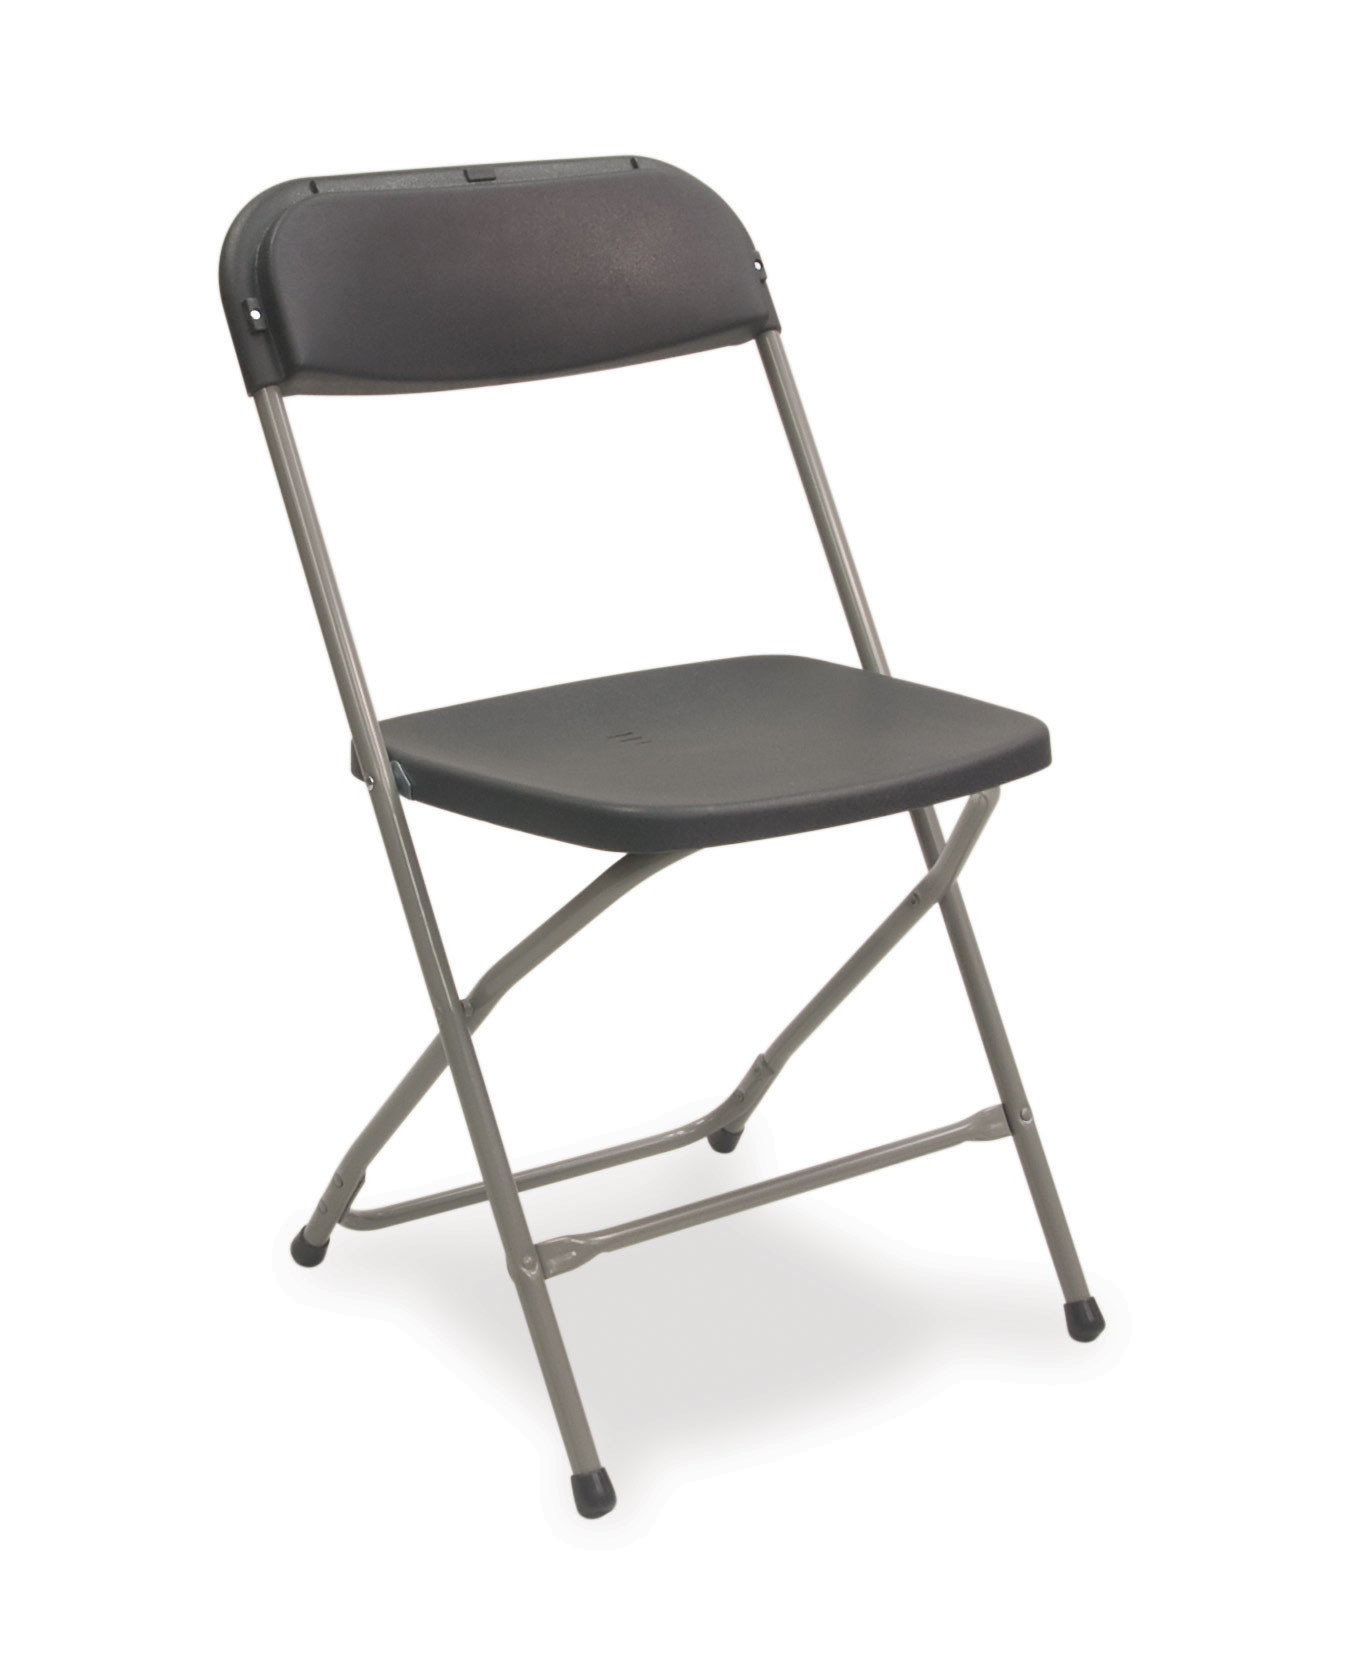 Advanced 172 & 182 Folding ChairsAdvanced Furniture